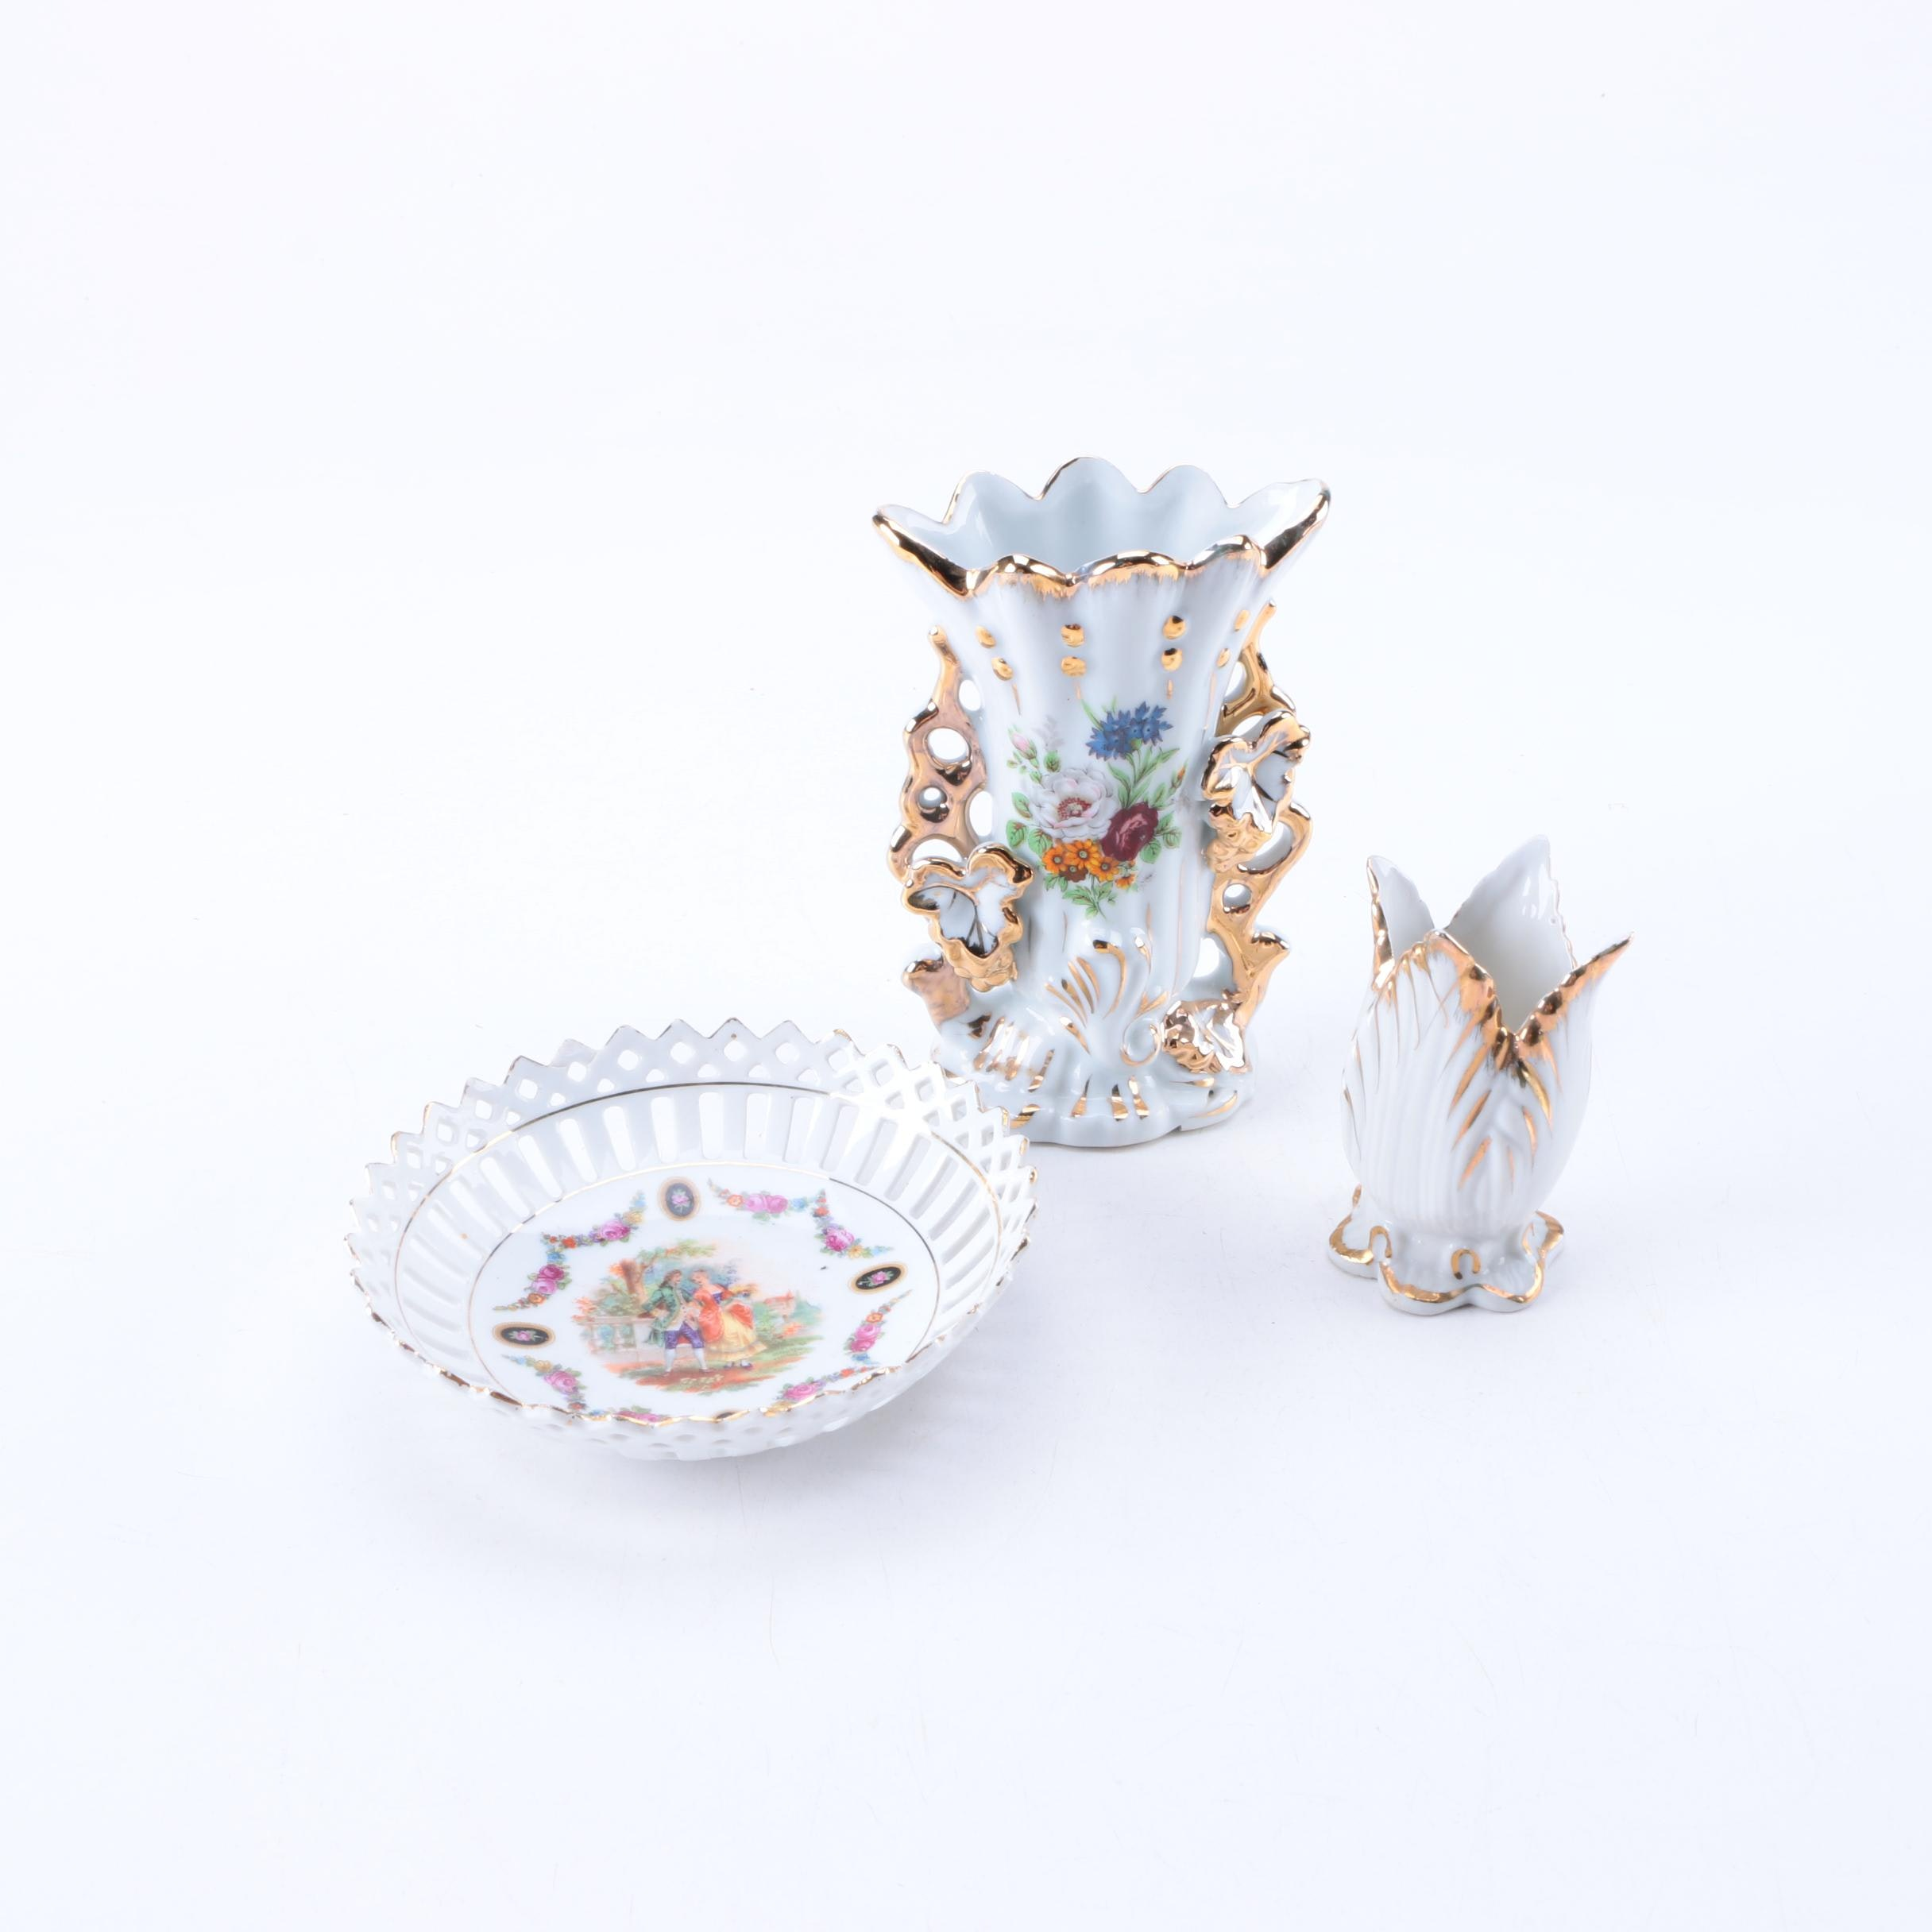 Hand-Painted Porcelain Vases and Dish